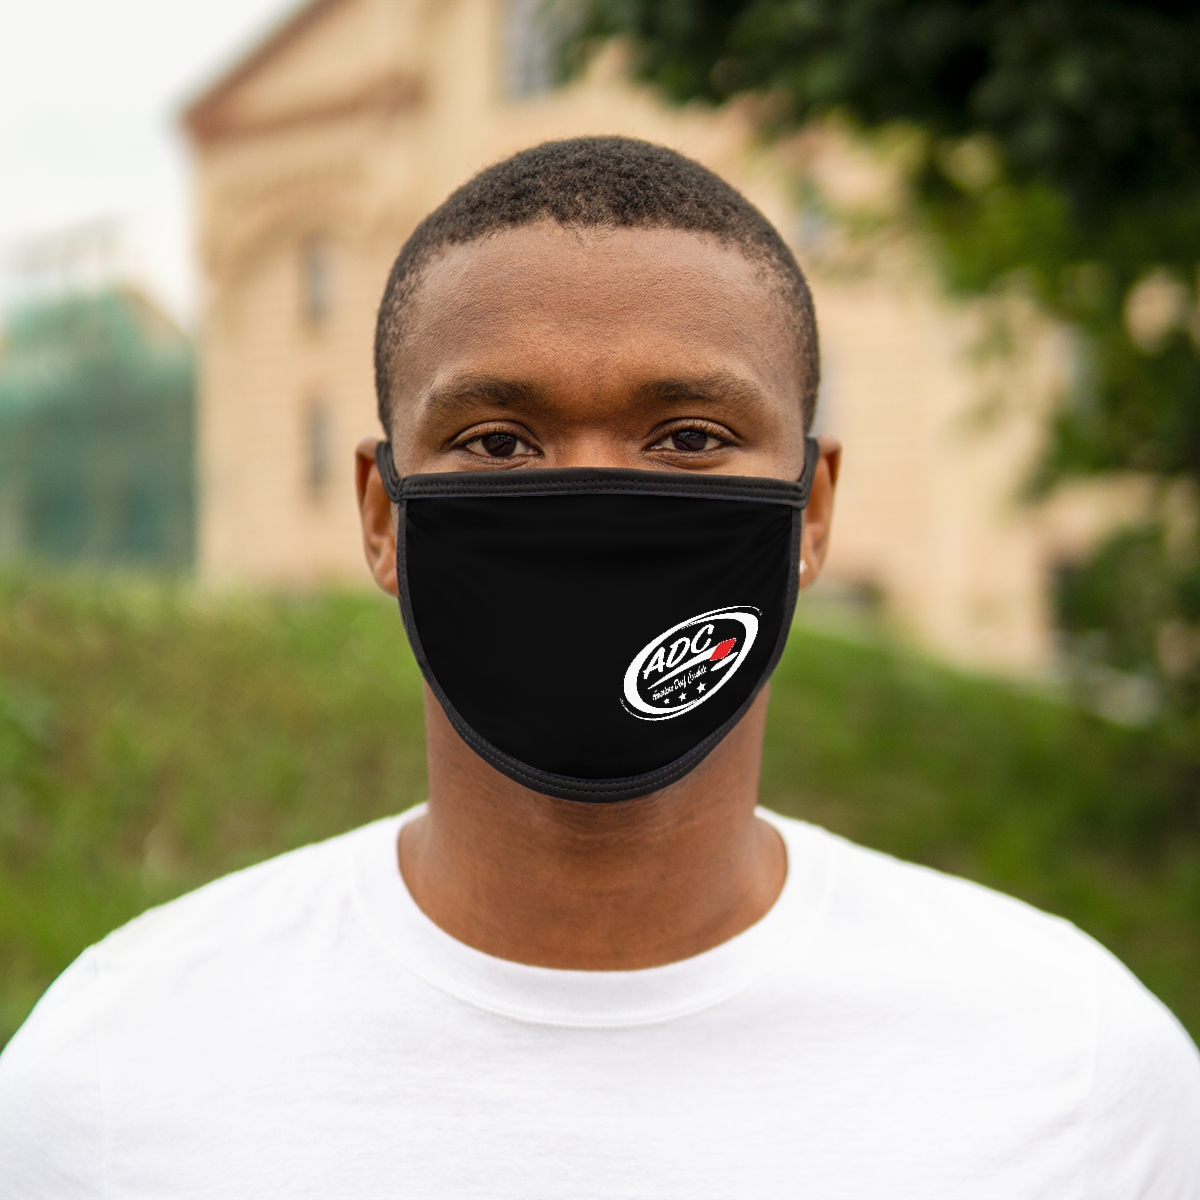 ADC Face Mask